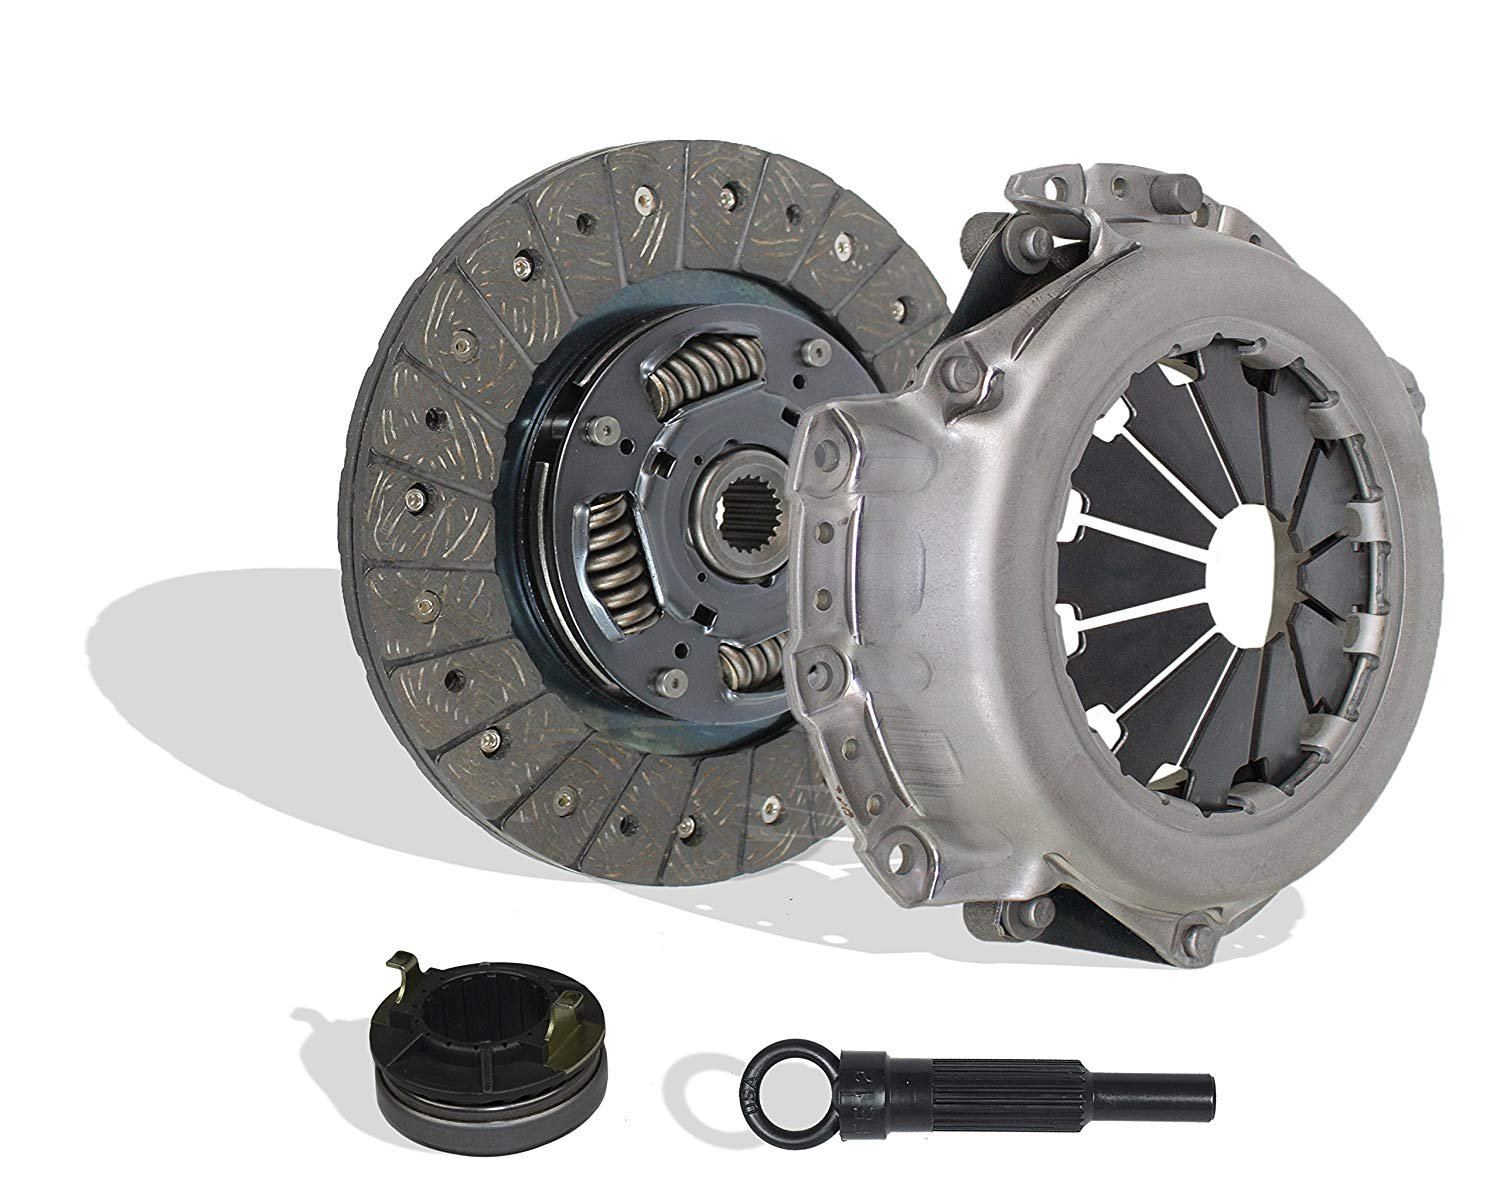 Clutch Kit Seco Works With Hyundai Accent Gl Gls L Se Sr Gt Base Sedan Hatchback 2001-2008 1.6L L4 GAS DOHC Naturally Aspirated Southeast Clutch